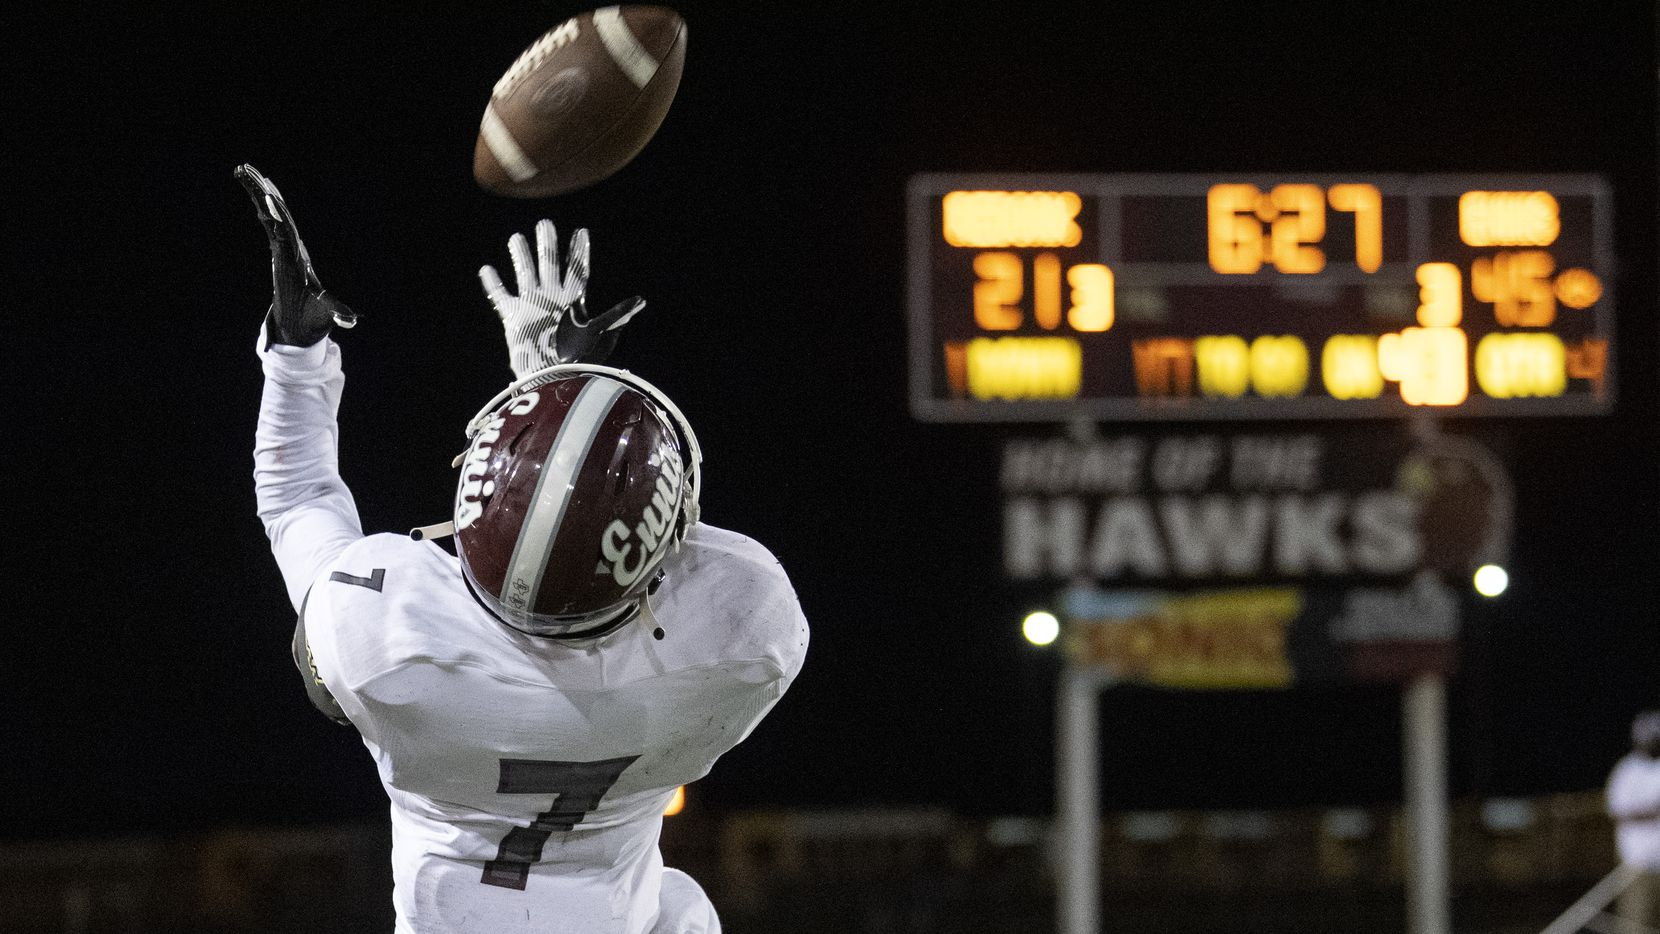 Ennis senior wide receiver Laylon Spencer (7) hauls in a pass from quarterback Collin Drake during the second half of a high school football game against Red Oak on Friday, September 25, 2020 at Billy Goodloe Stadium in Red Oak, Texas. (Jeffrey McWhorter/Special Contributor)